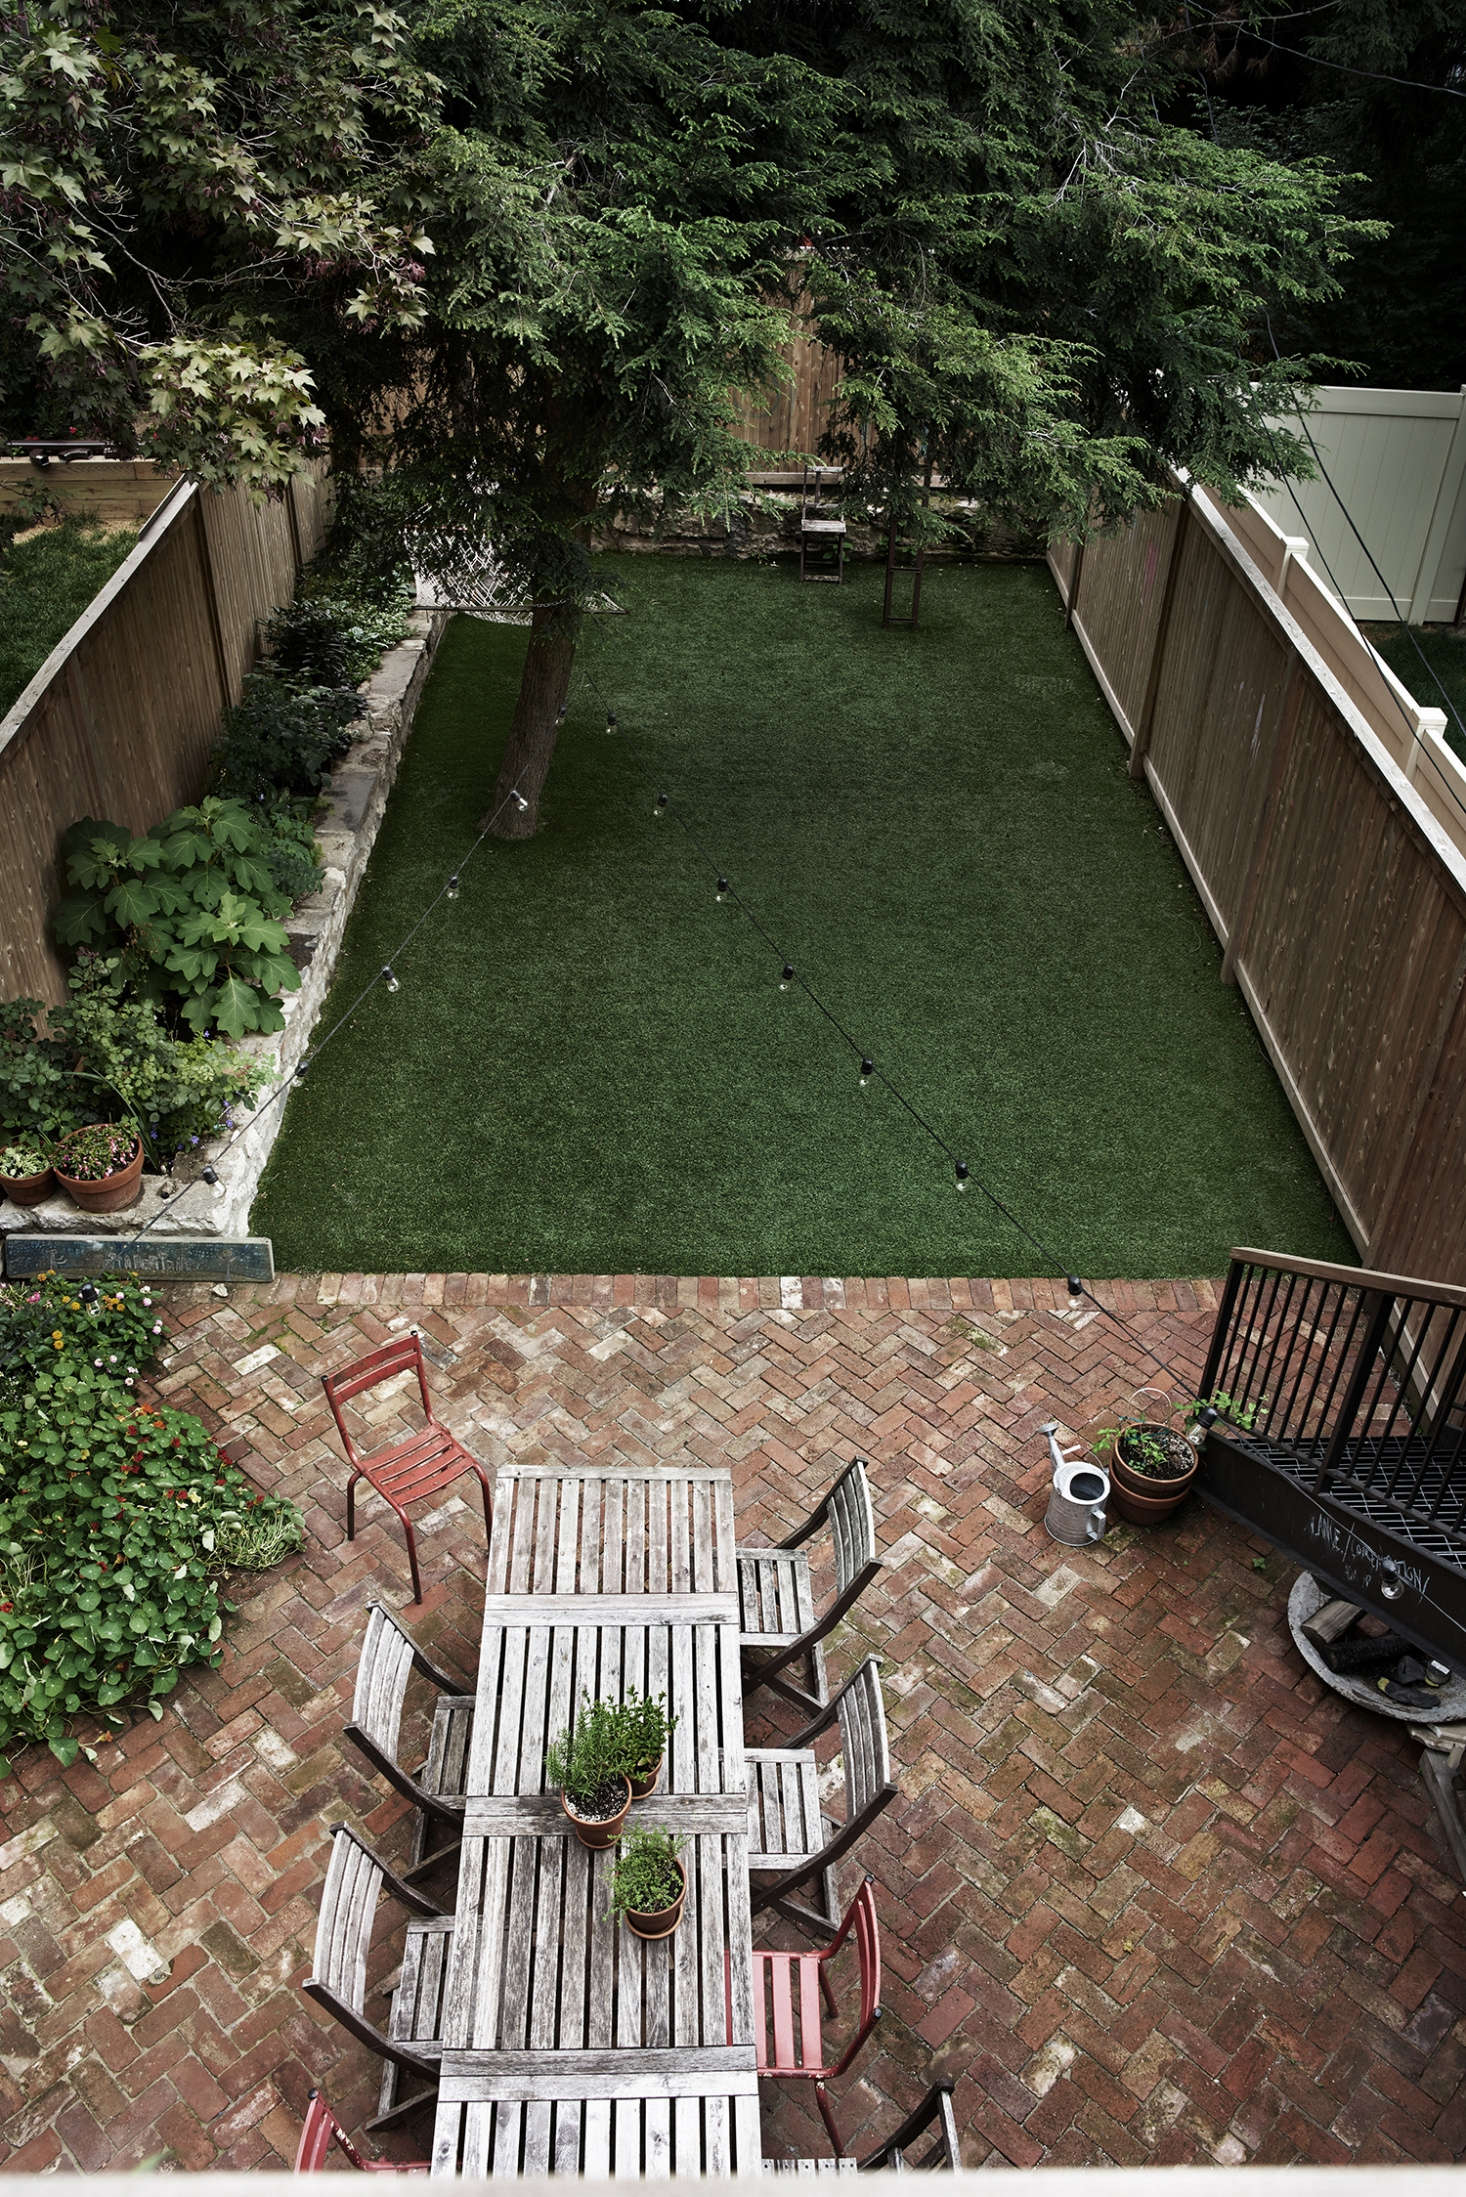 In Brooklyn Homeowner Rony Vardiu0027s Backyard Has A Lawn Of Artificial Turf.  U201cItu0027s The